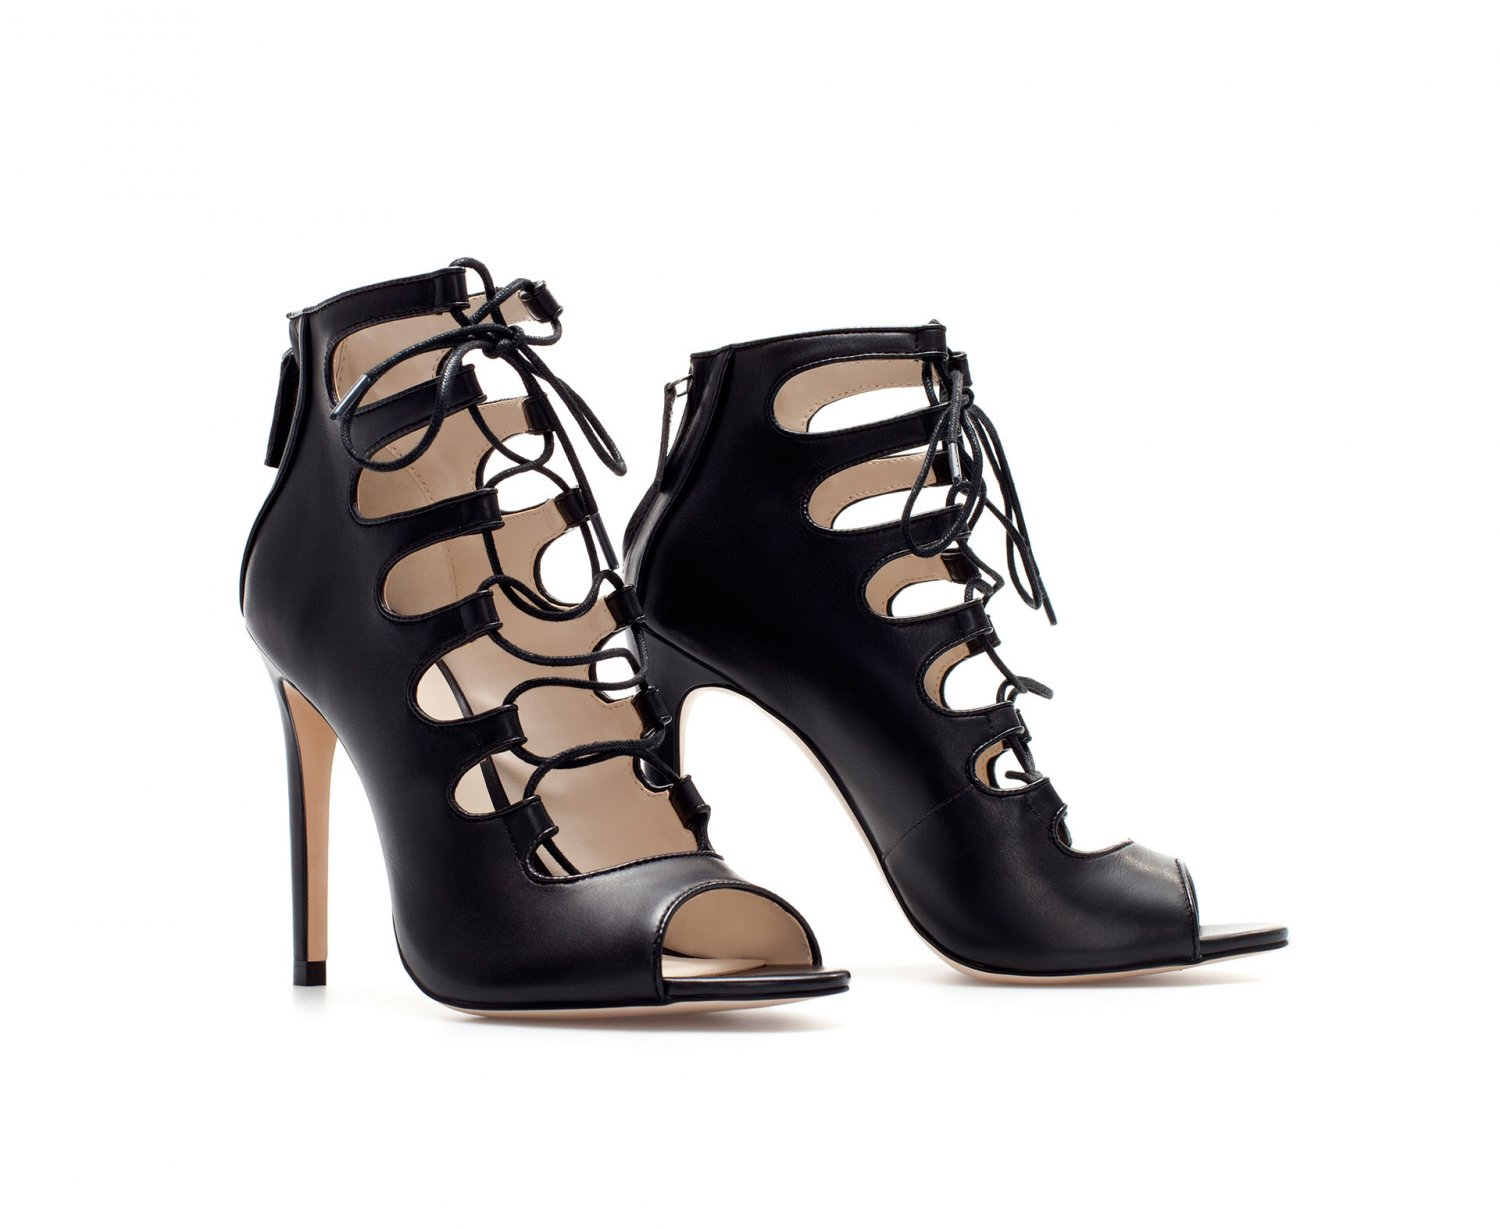 543d7ddf40a BLOG FAVORITE ZARA Leather Strappy Lace Up Ankle Boot Bootie High Heel  Sandals - Black - 8 39